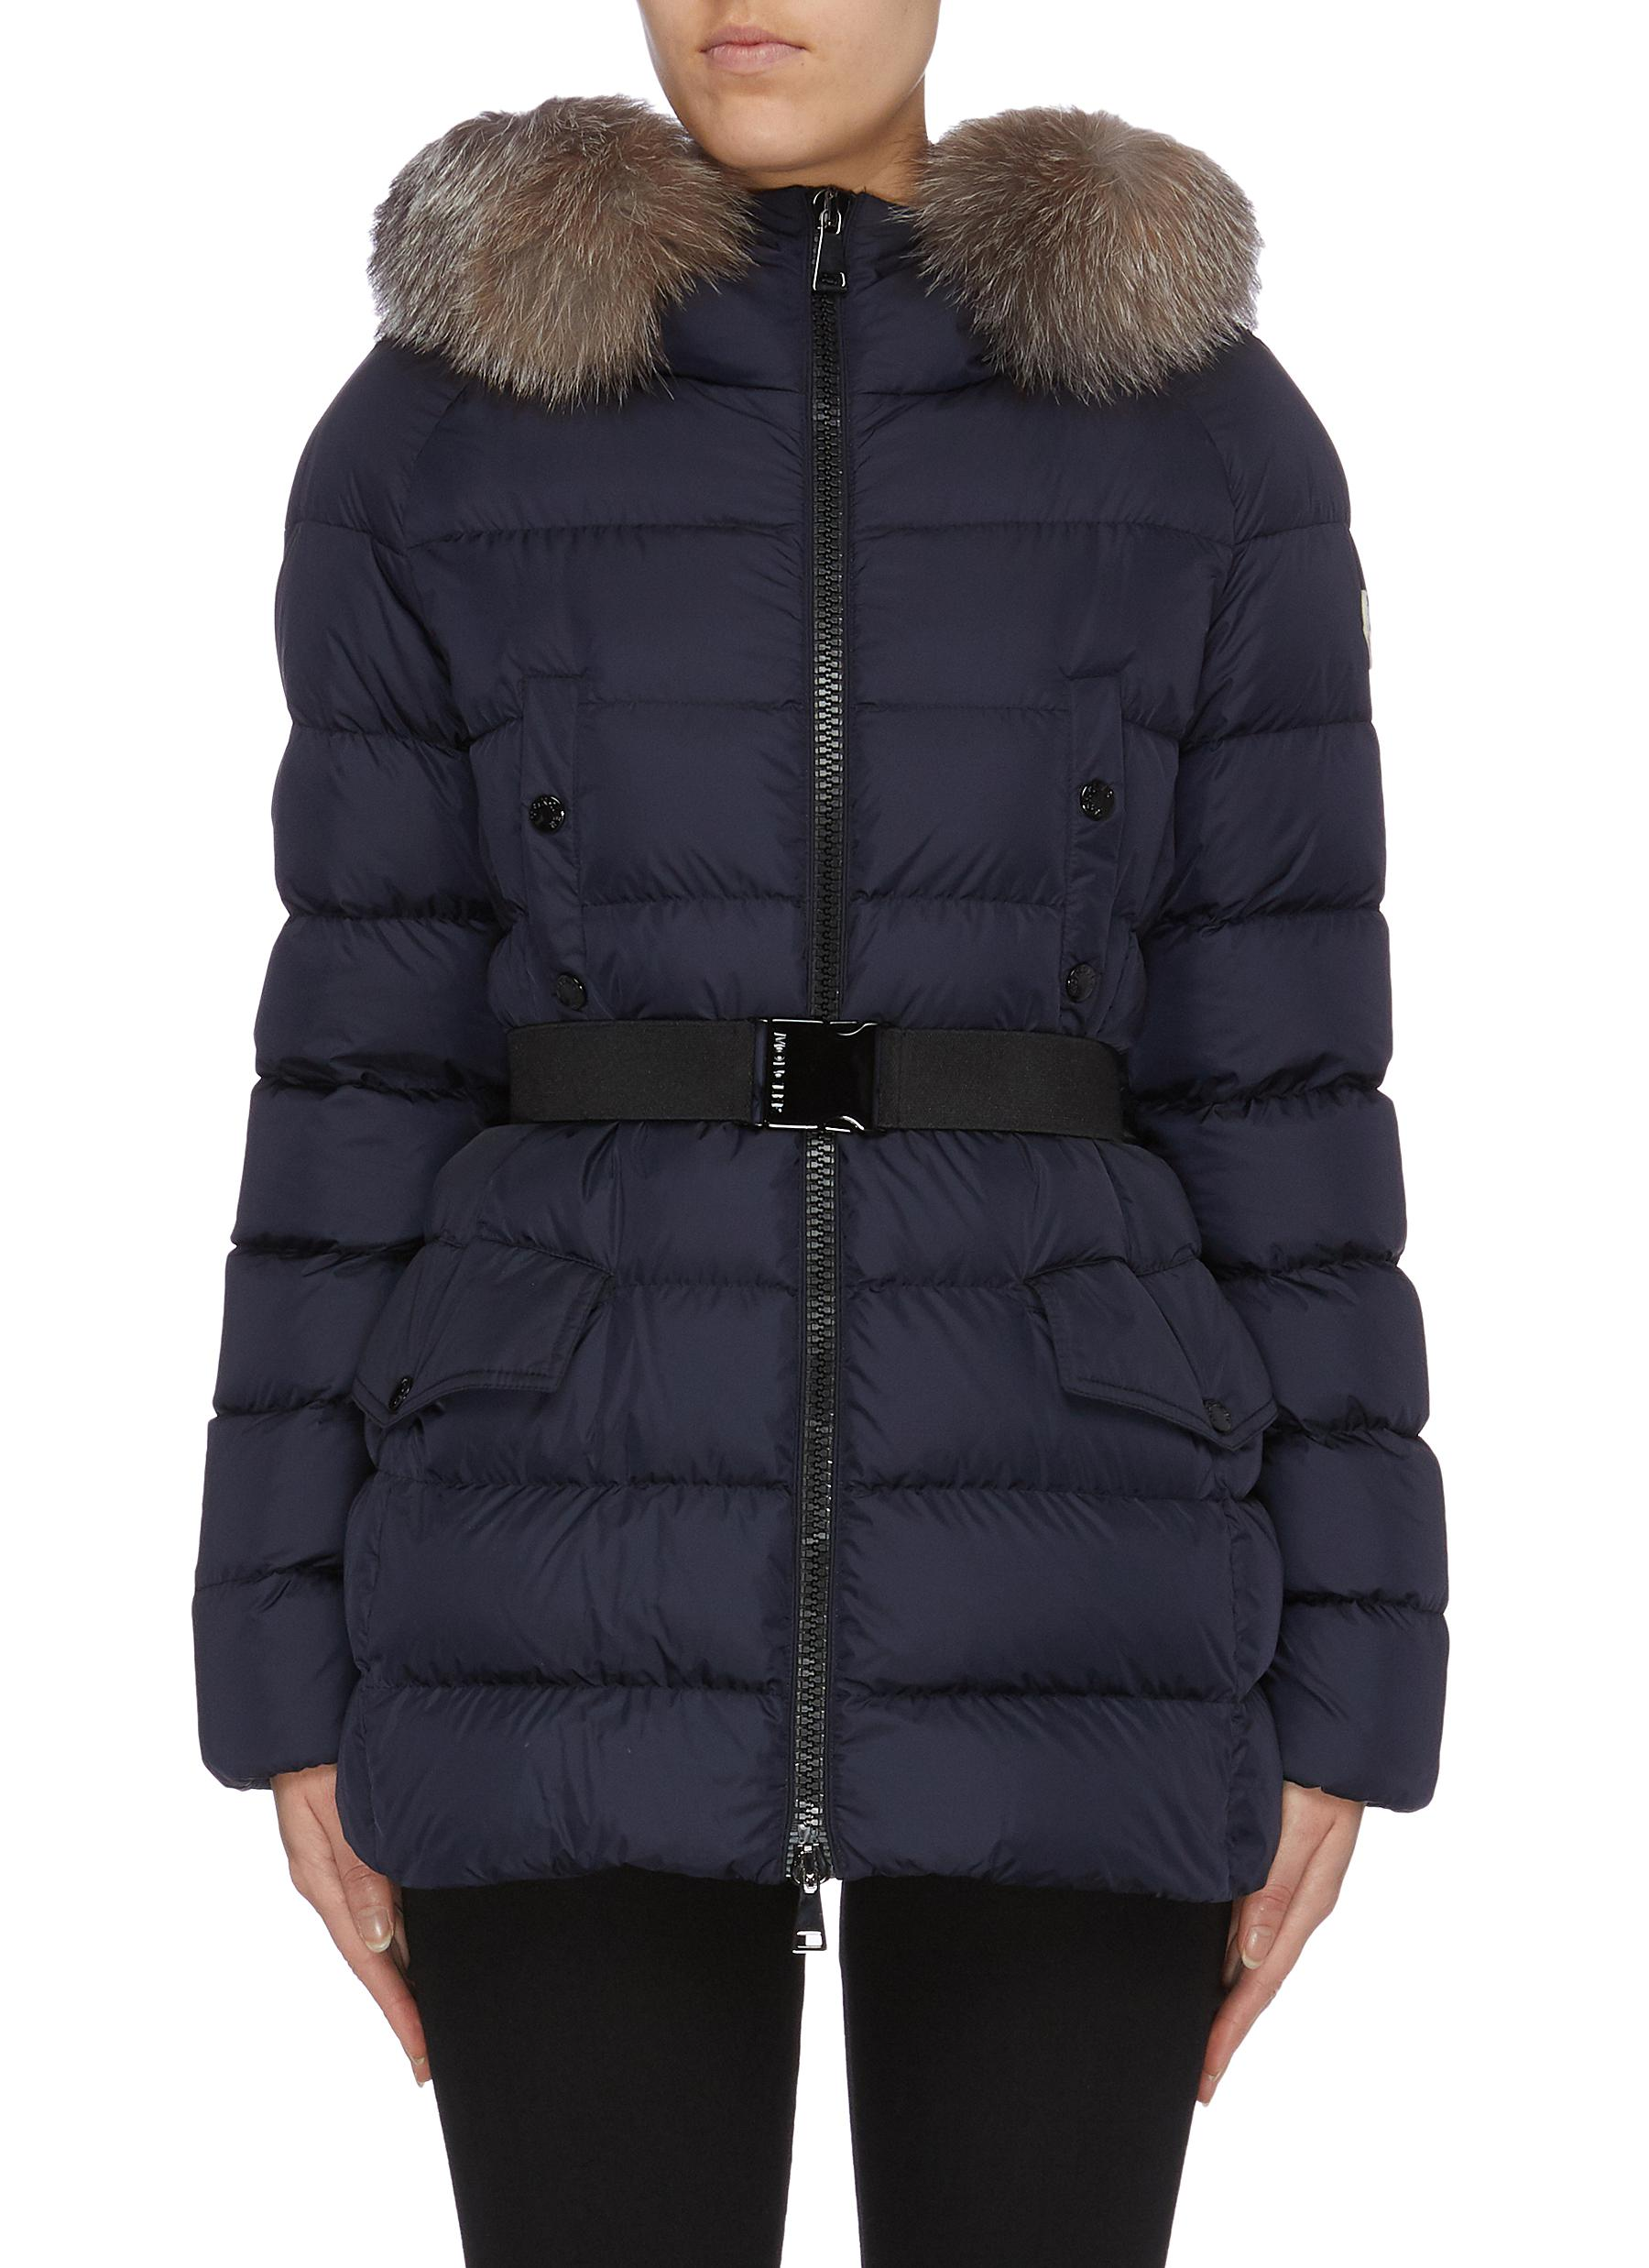 Clion detachable hood belted down puffer coat by Moncler